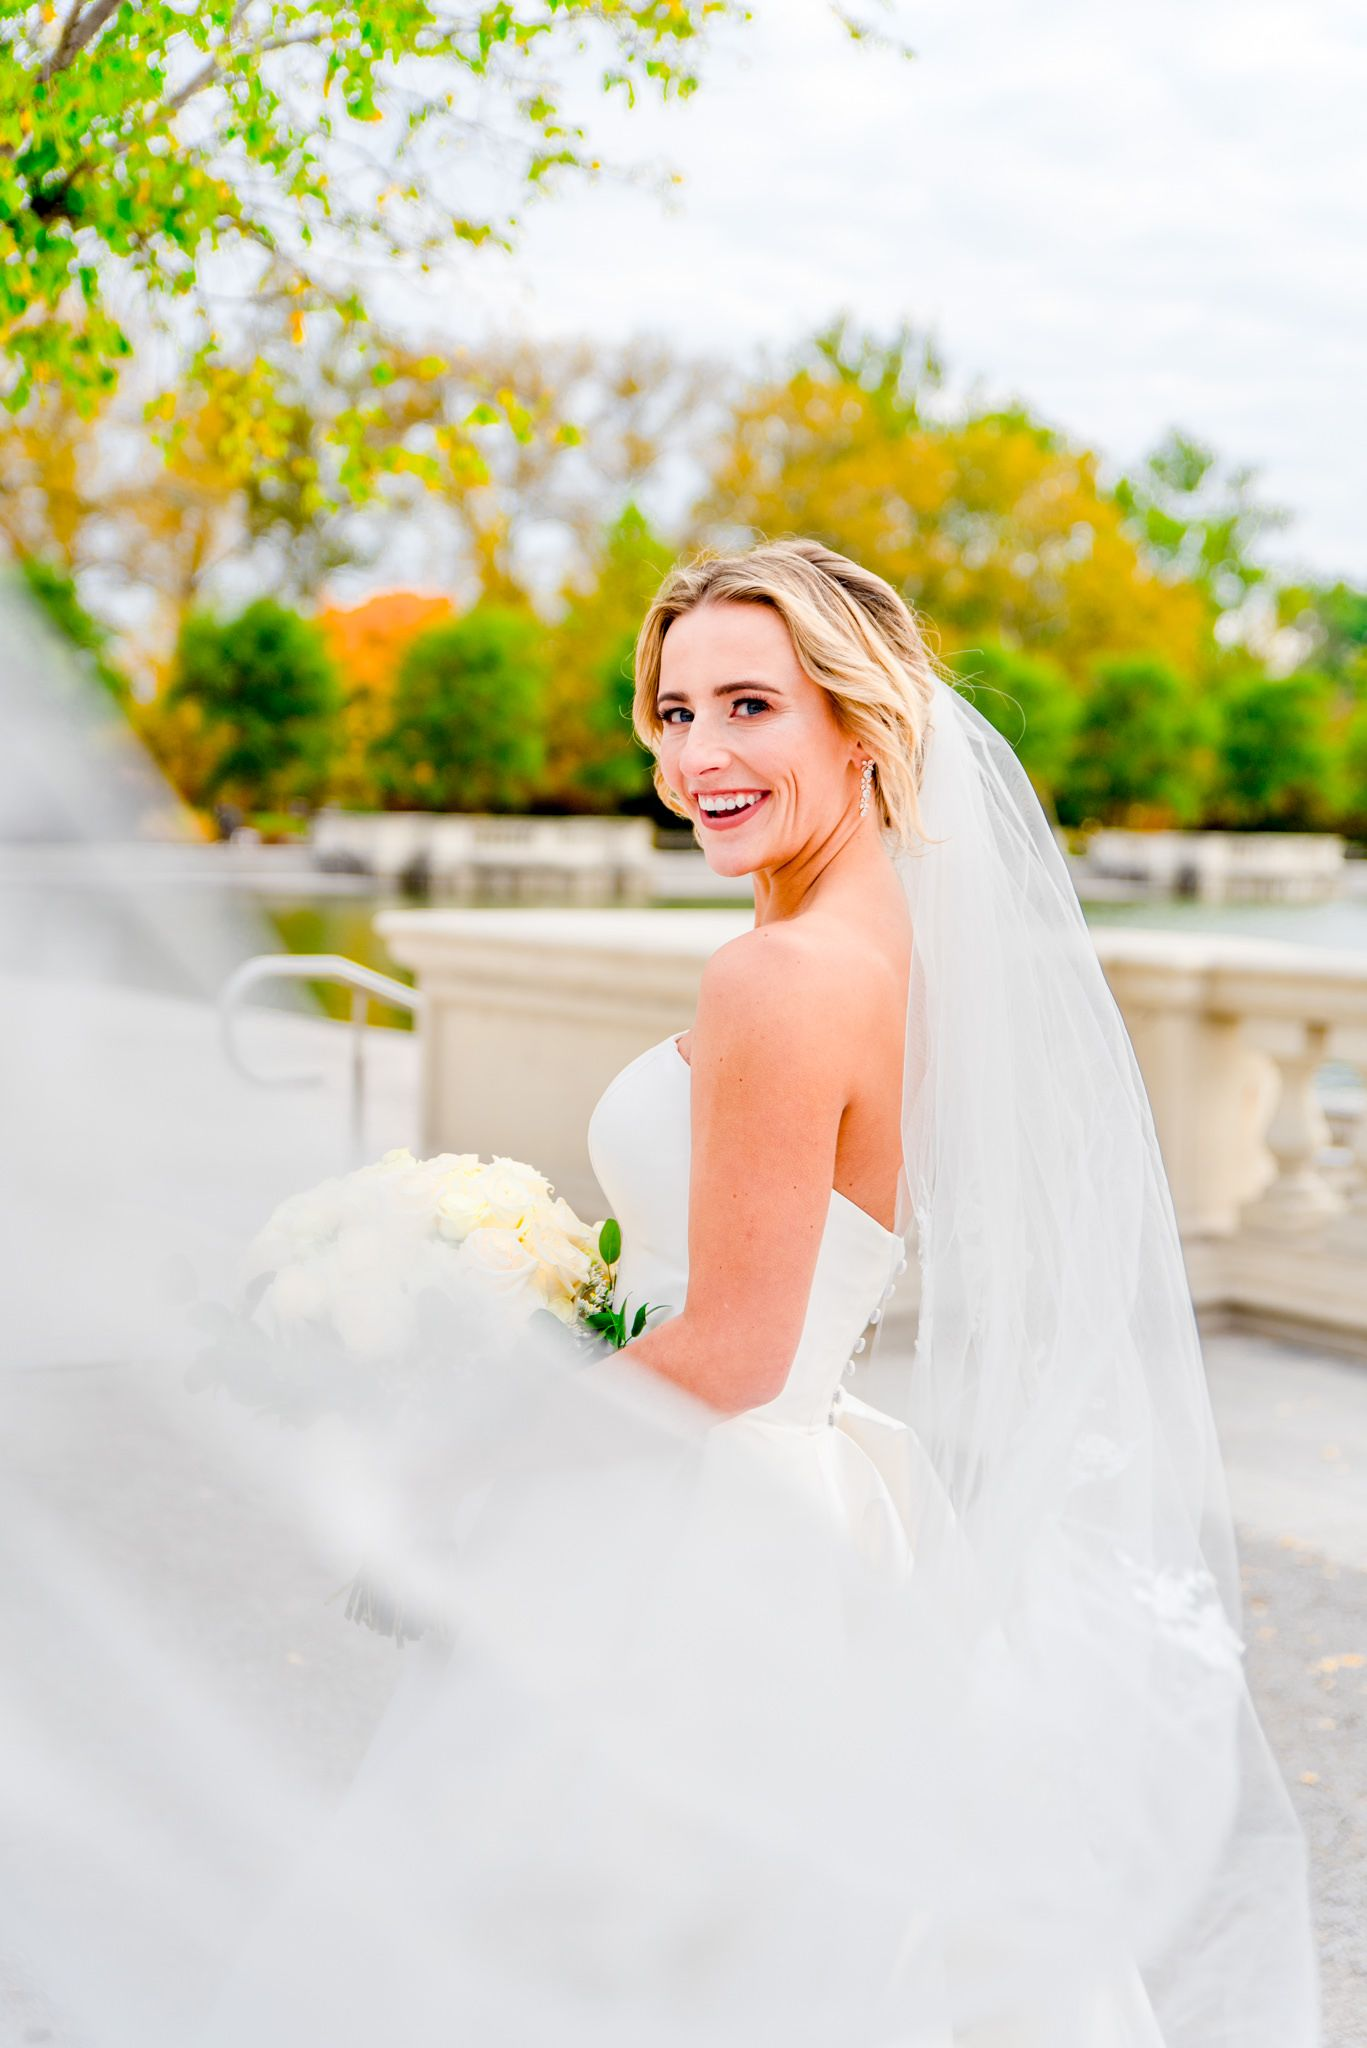 blonde bride with updo and long veil and white bouquet laughing at the camera for Forest Park STL wedding pictures